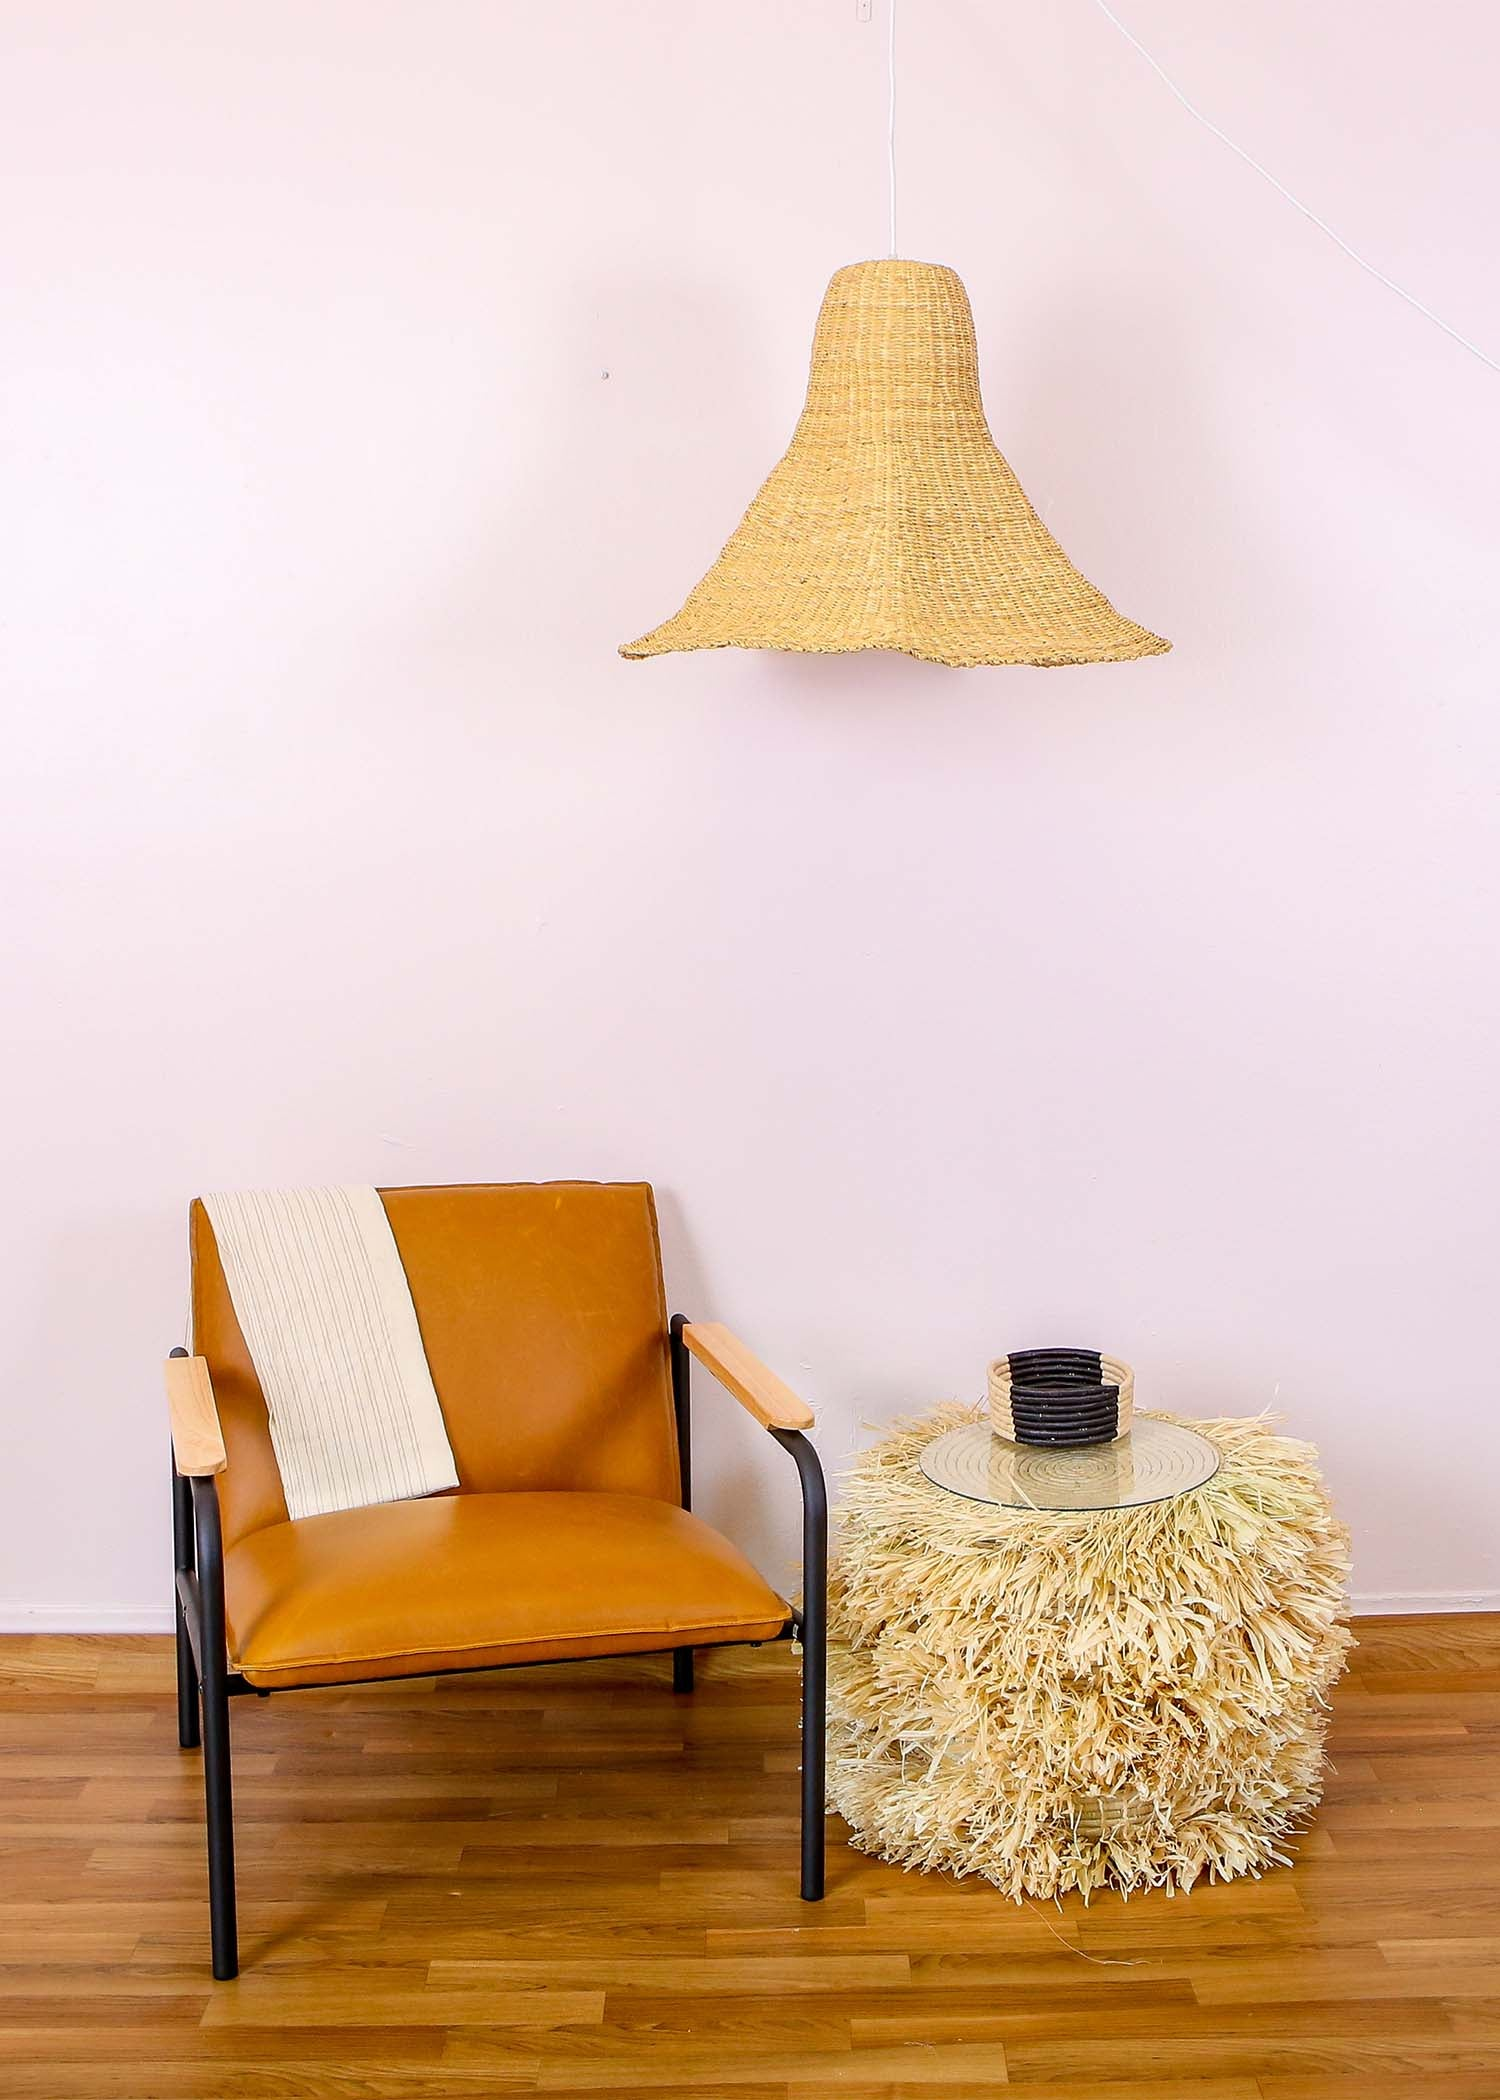 Fringed Natural Stool - KAZI